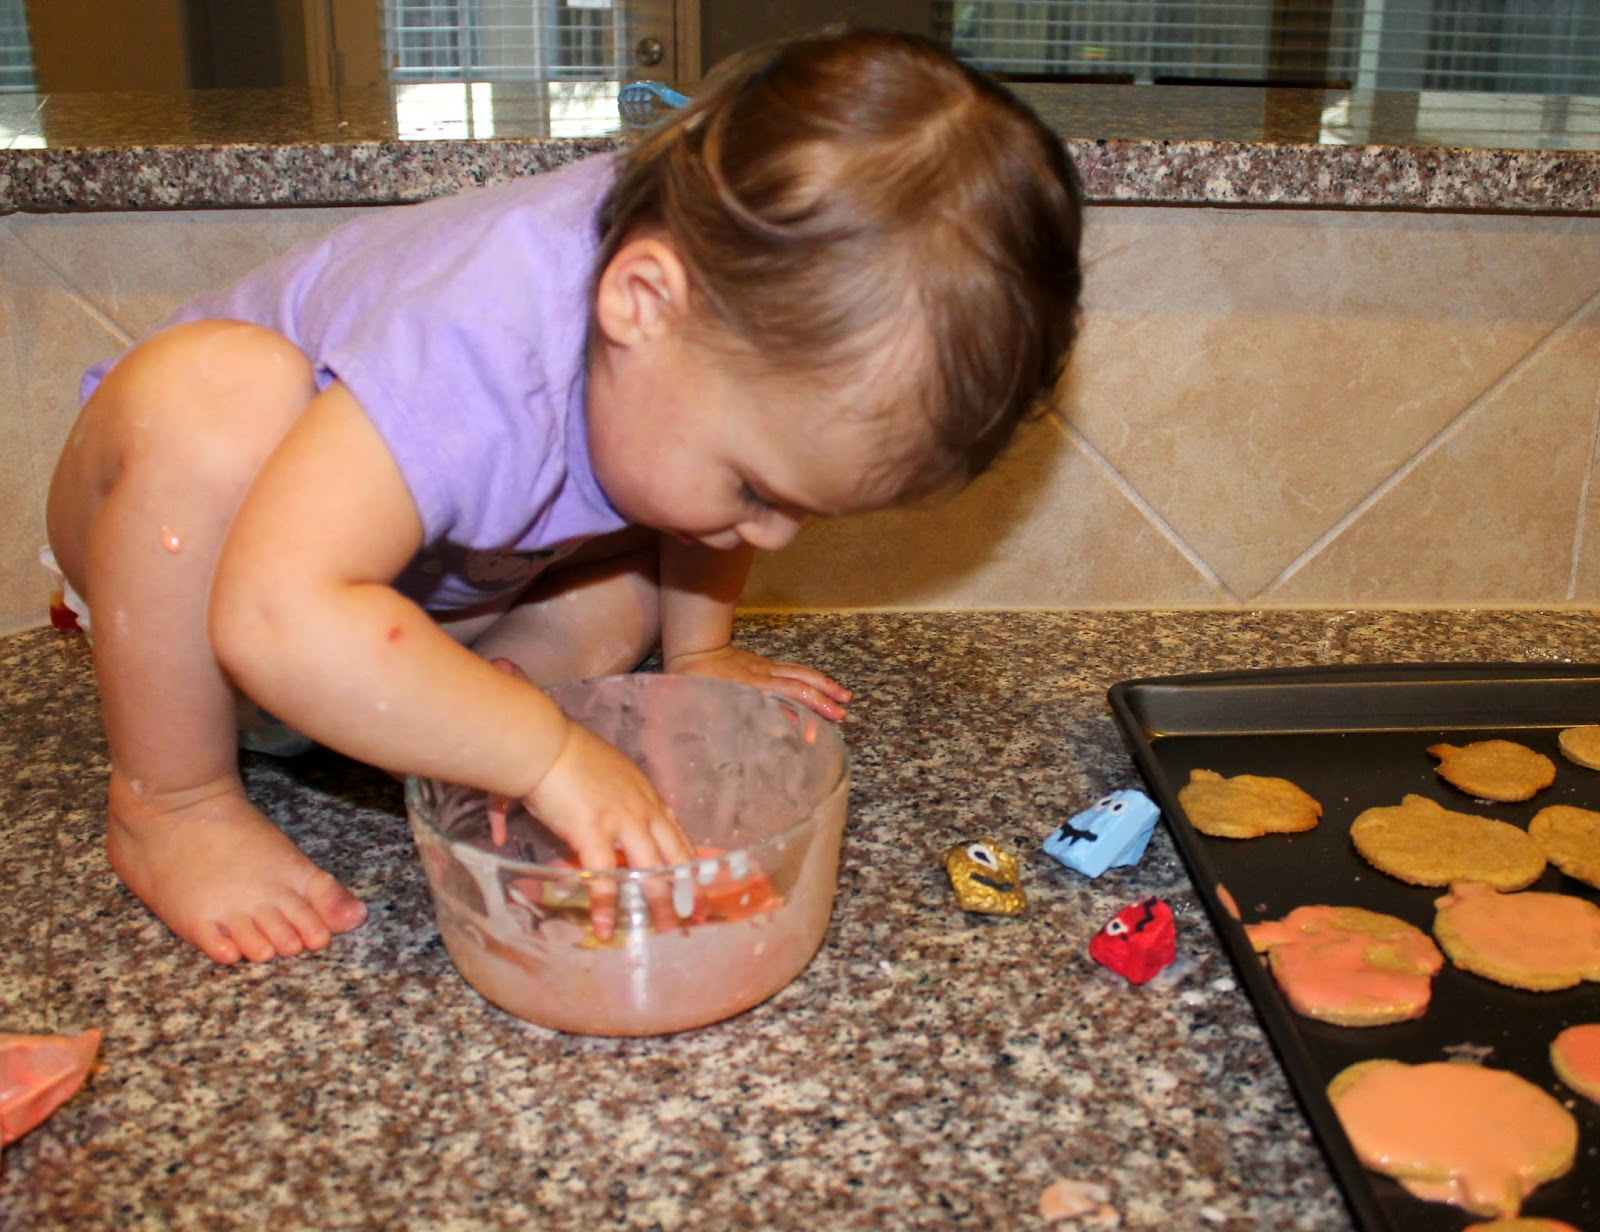 baking with a toddler | Bubbles and Gold (www.bubblesandgold.com)